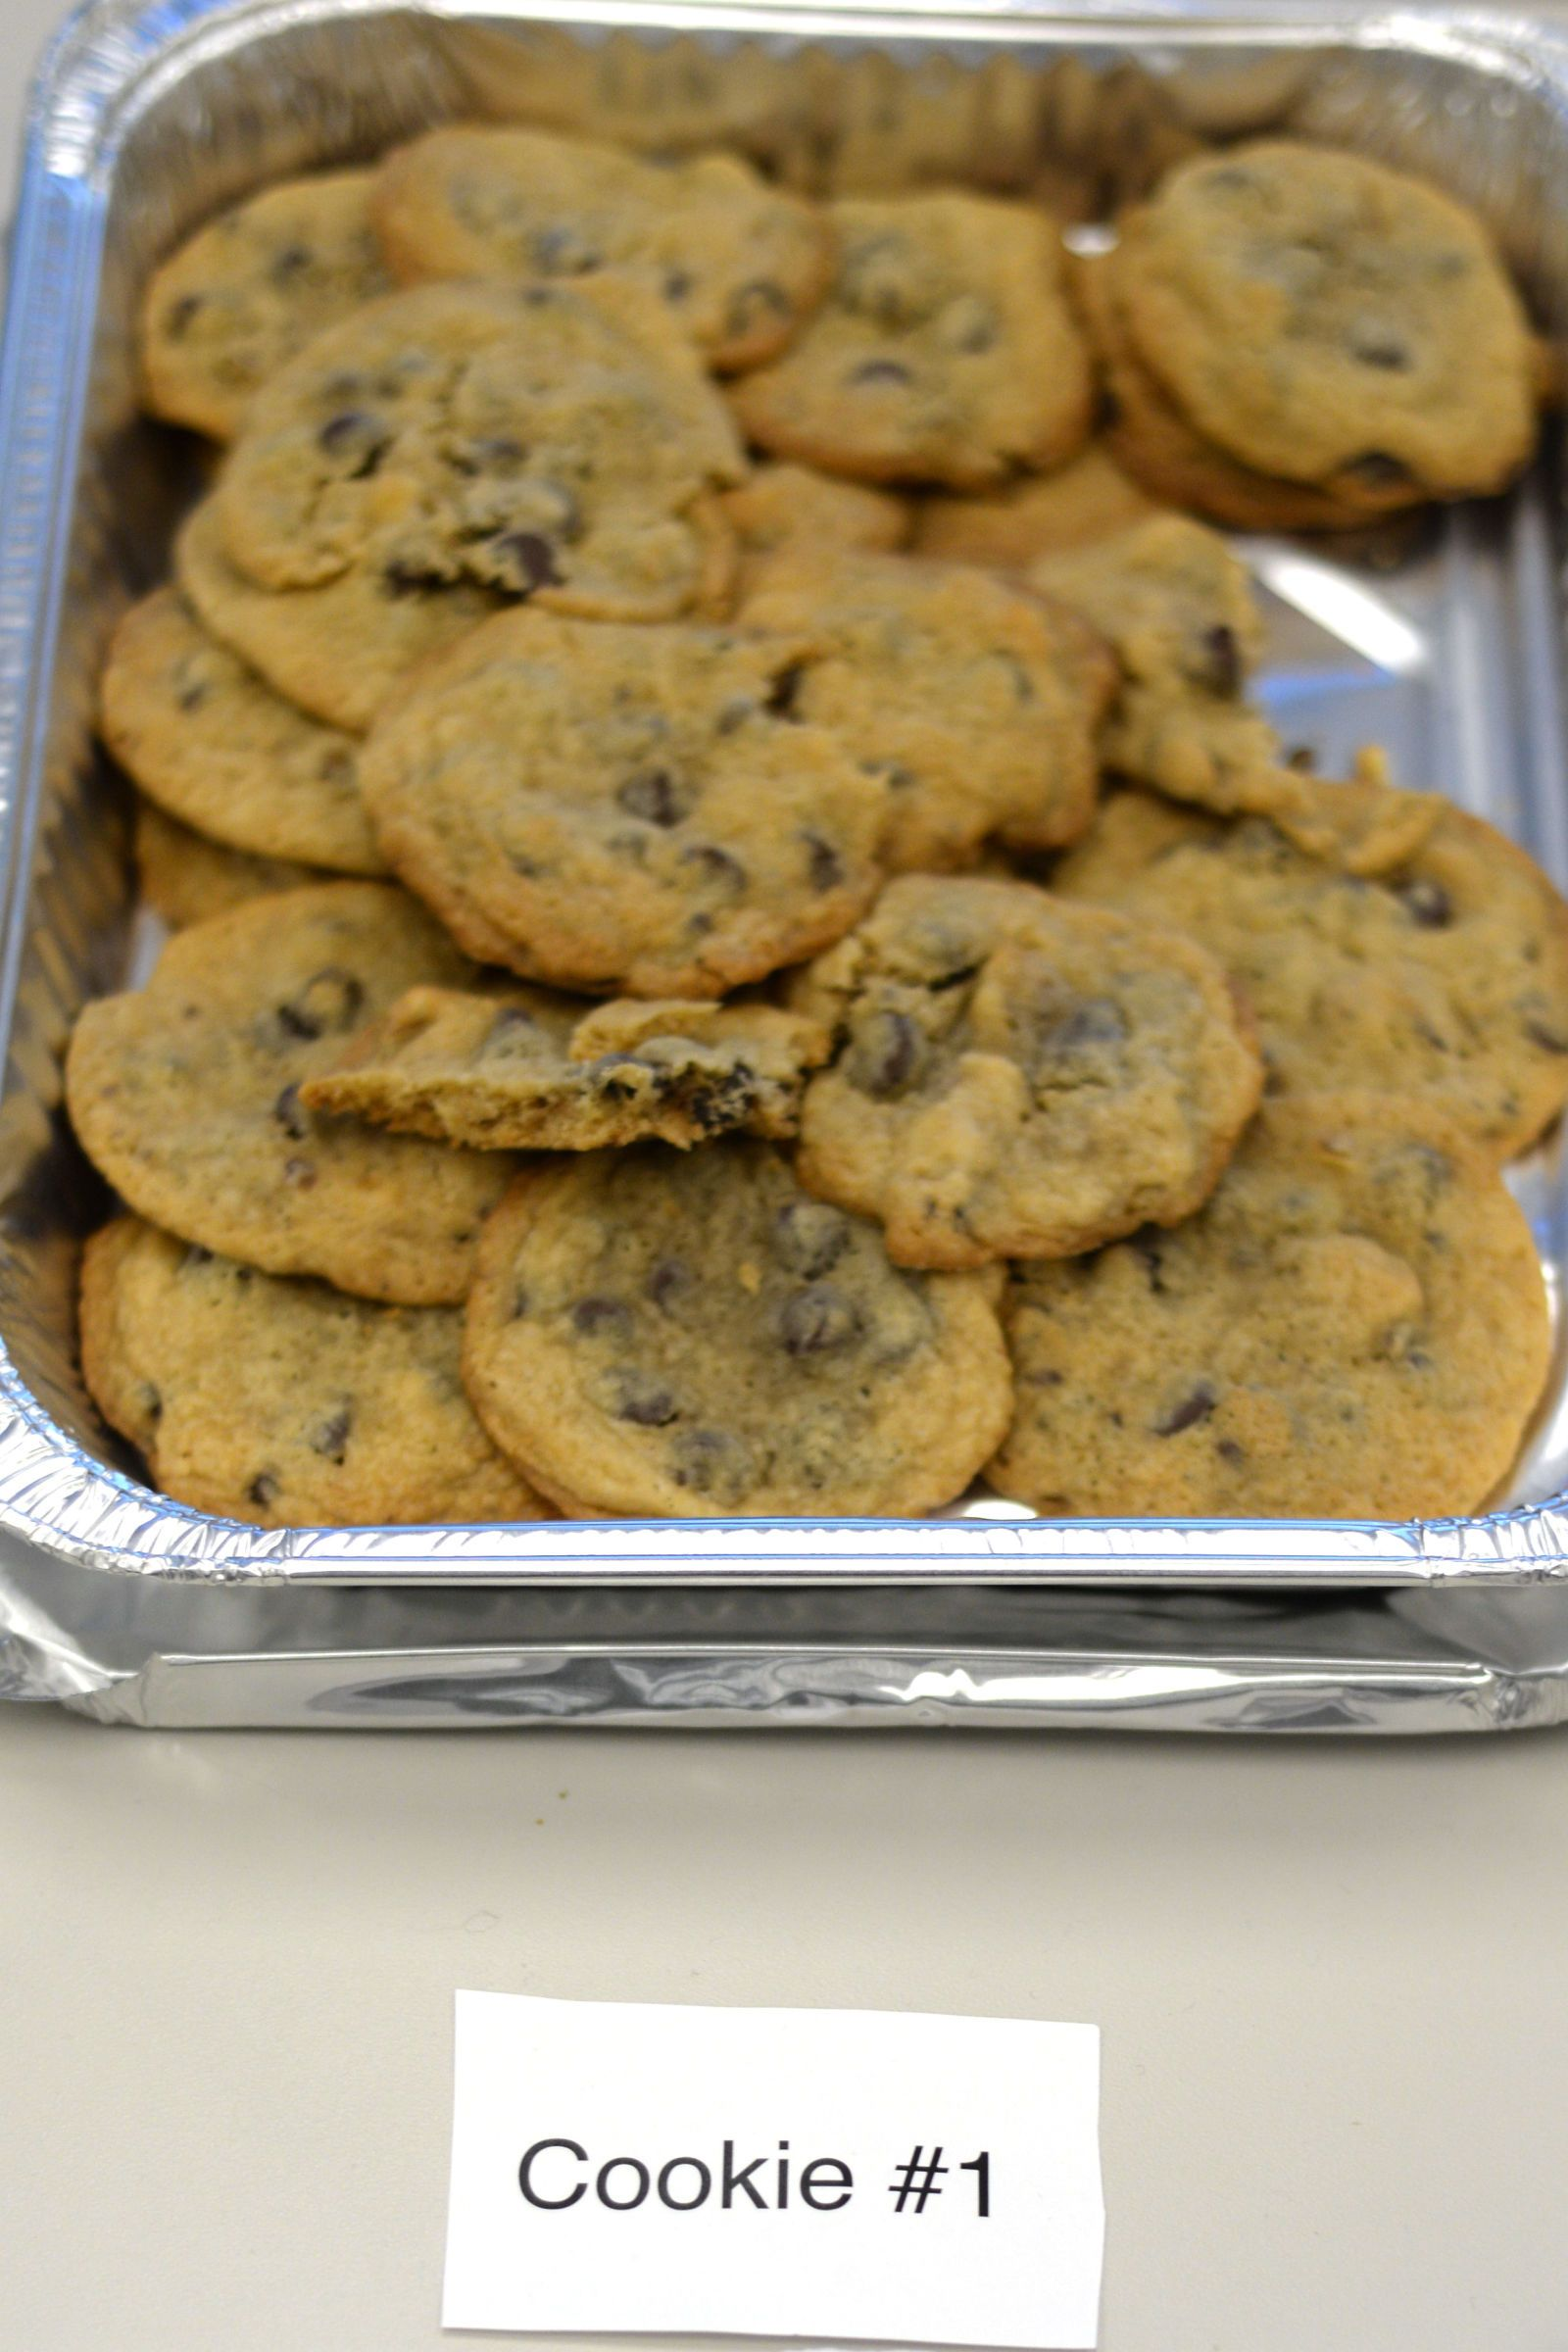 2nd Place: The Nestlé Toll House Cookie